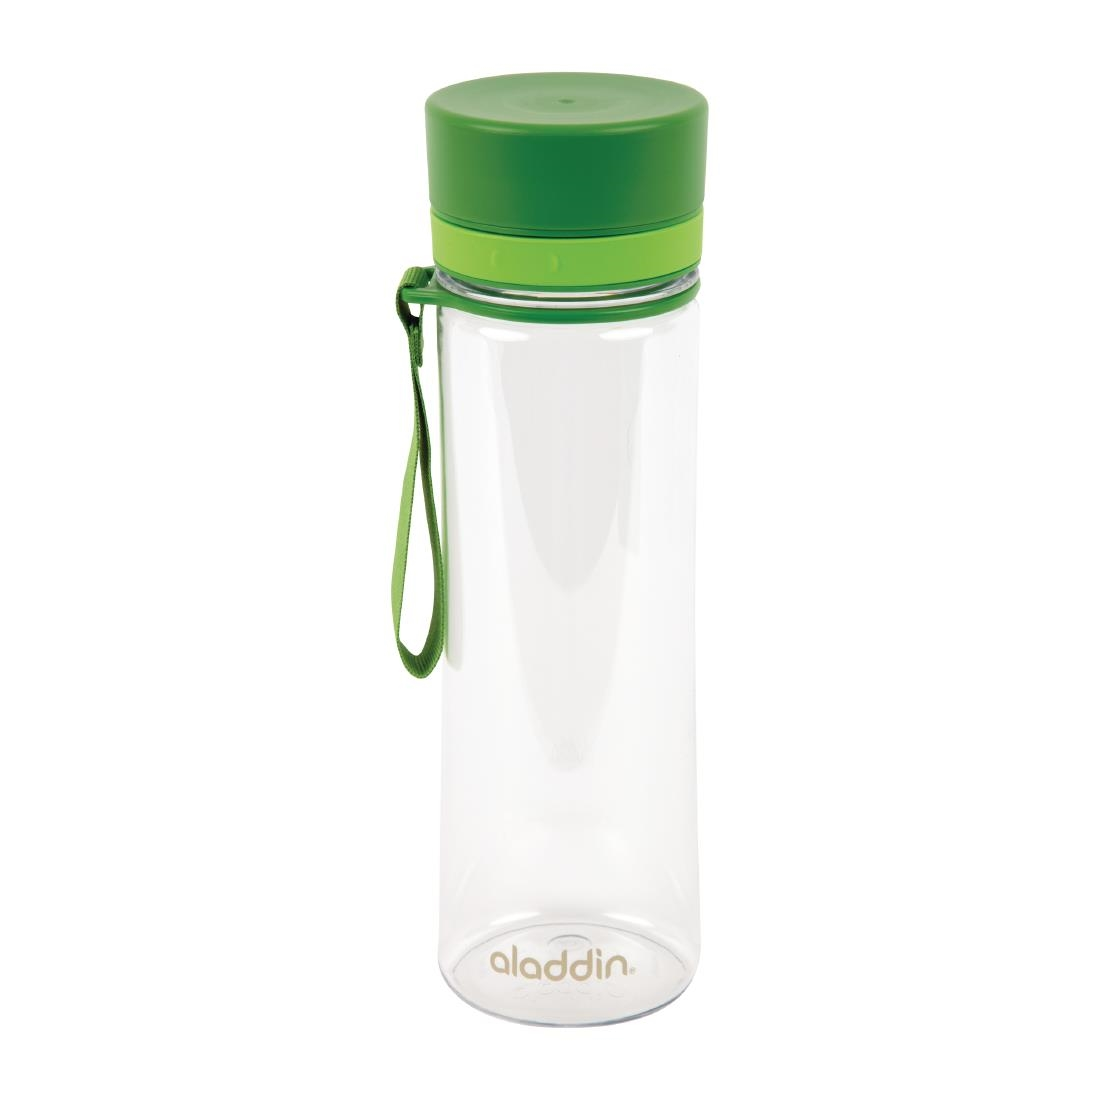 Image of Aladdin Aveo Reusable Water Bottle Green 600ml / 21oz